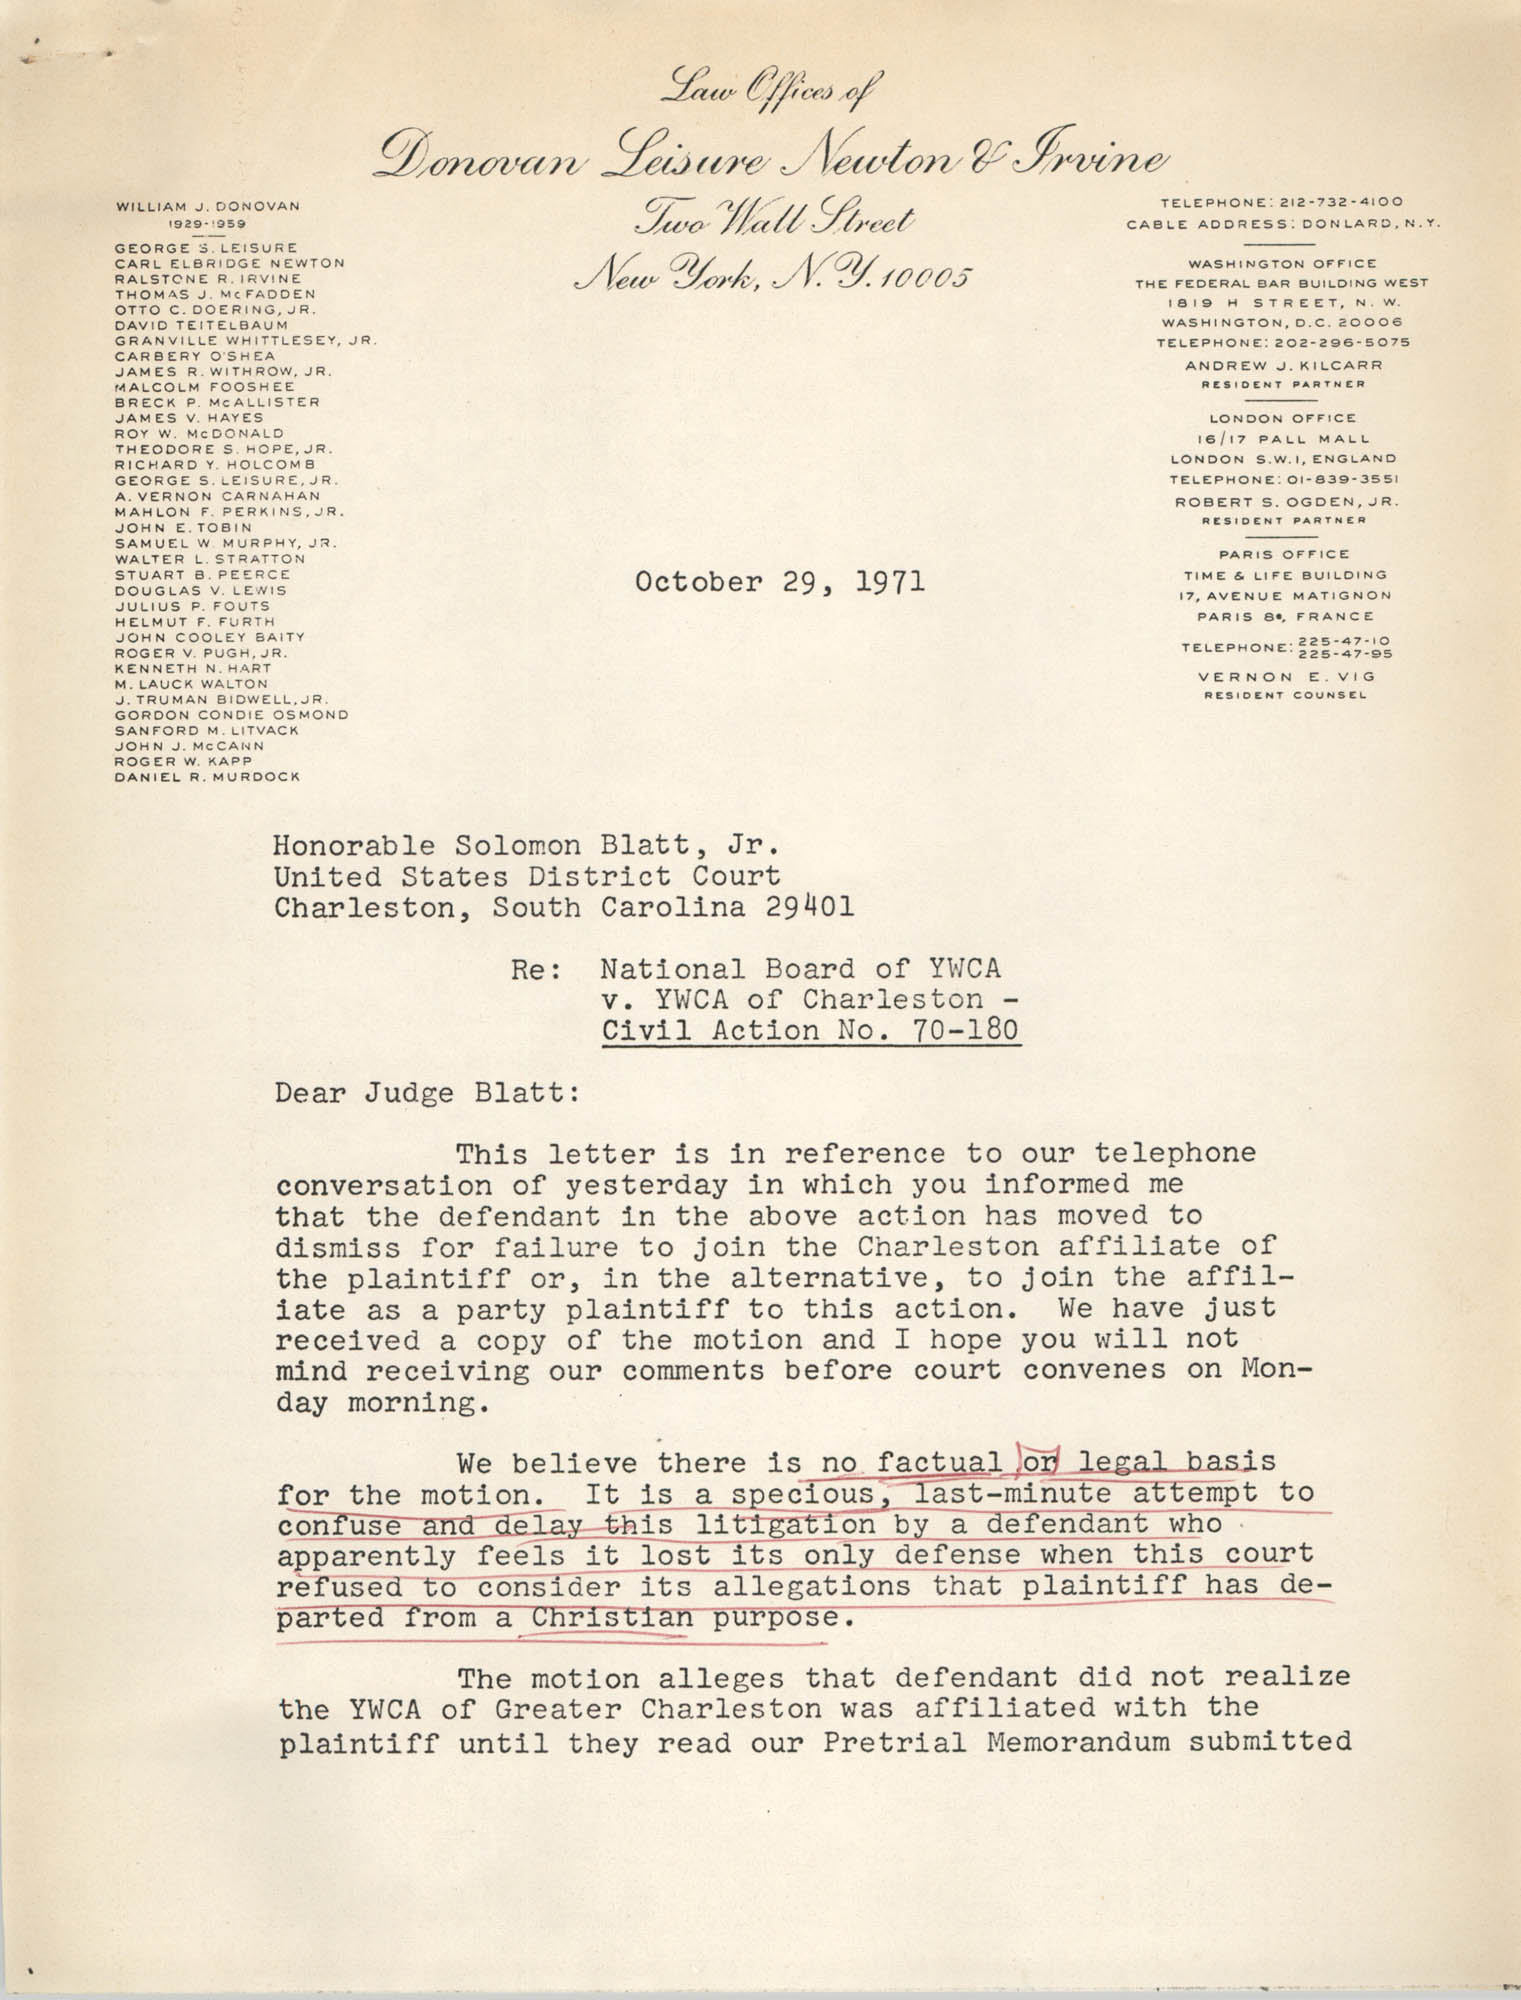 Letter from William C. Pelster to Honorable Solomon Blatt, Jr., October 29, 1971, Page 1